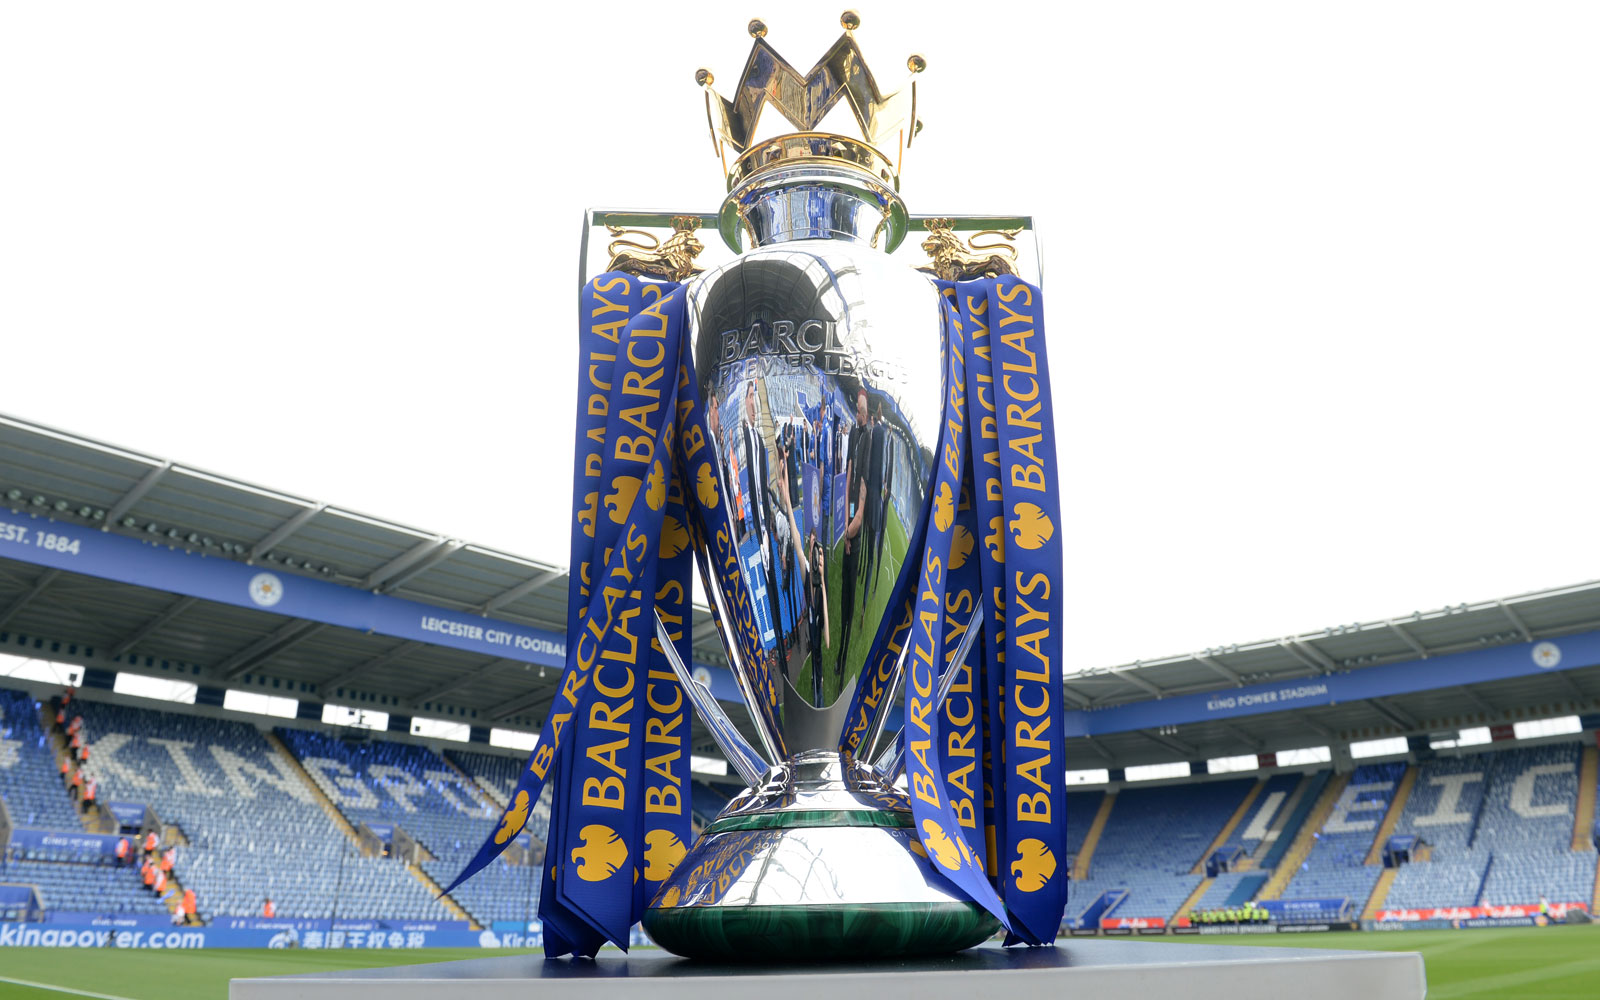 The Premier League trophy arrives at King Power Stadium, where it now belongs.